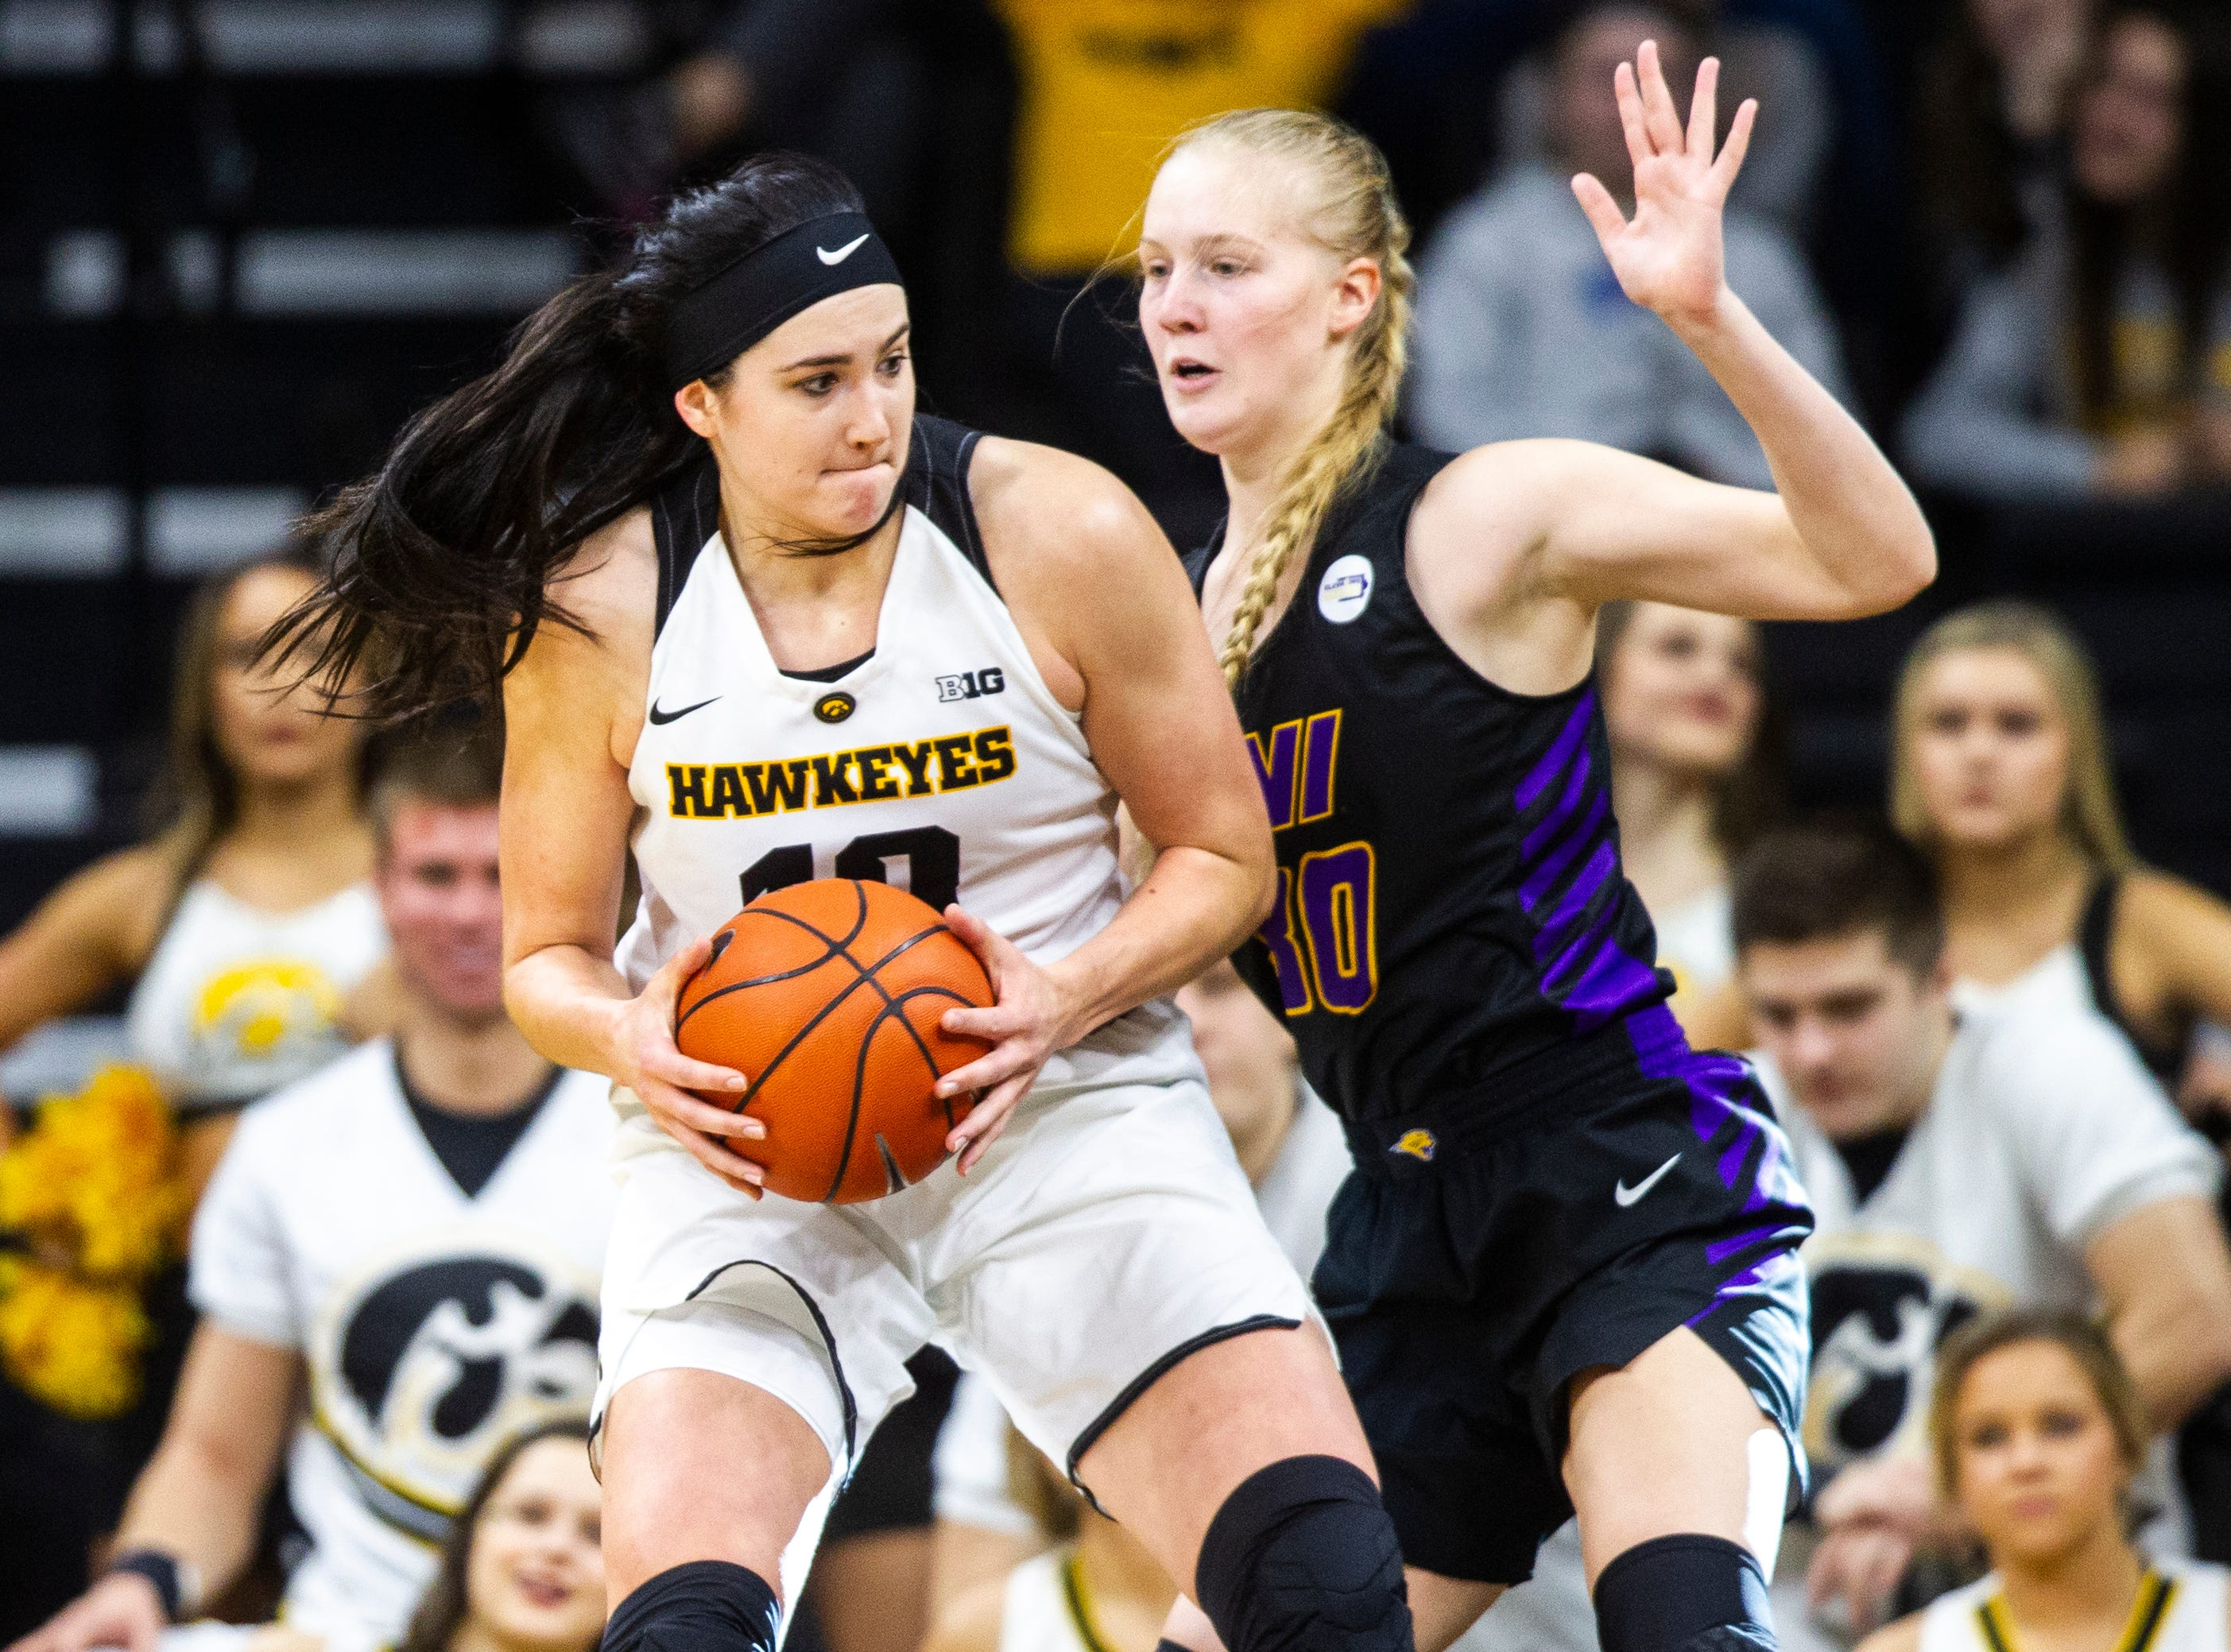 Iowa forward Megan Gustafson (10) gets defended by Northern Iowa center Cynthia Wolf (30) during a NCAA women's basketball game on Sunday, Dec. 16, 2018, at Carver-Hawkeye Arena in Iowa City.